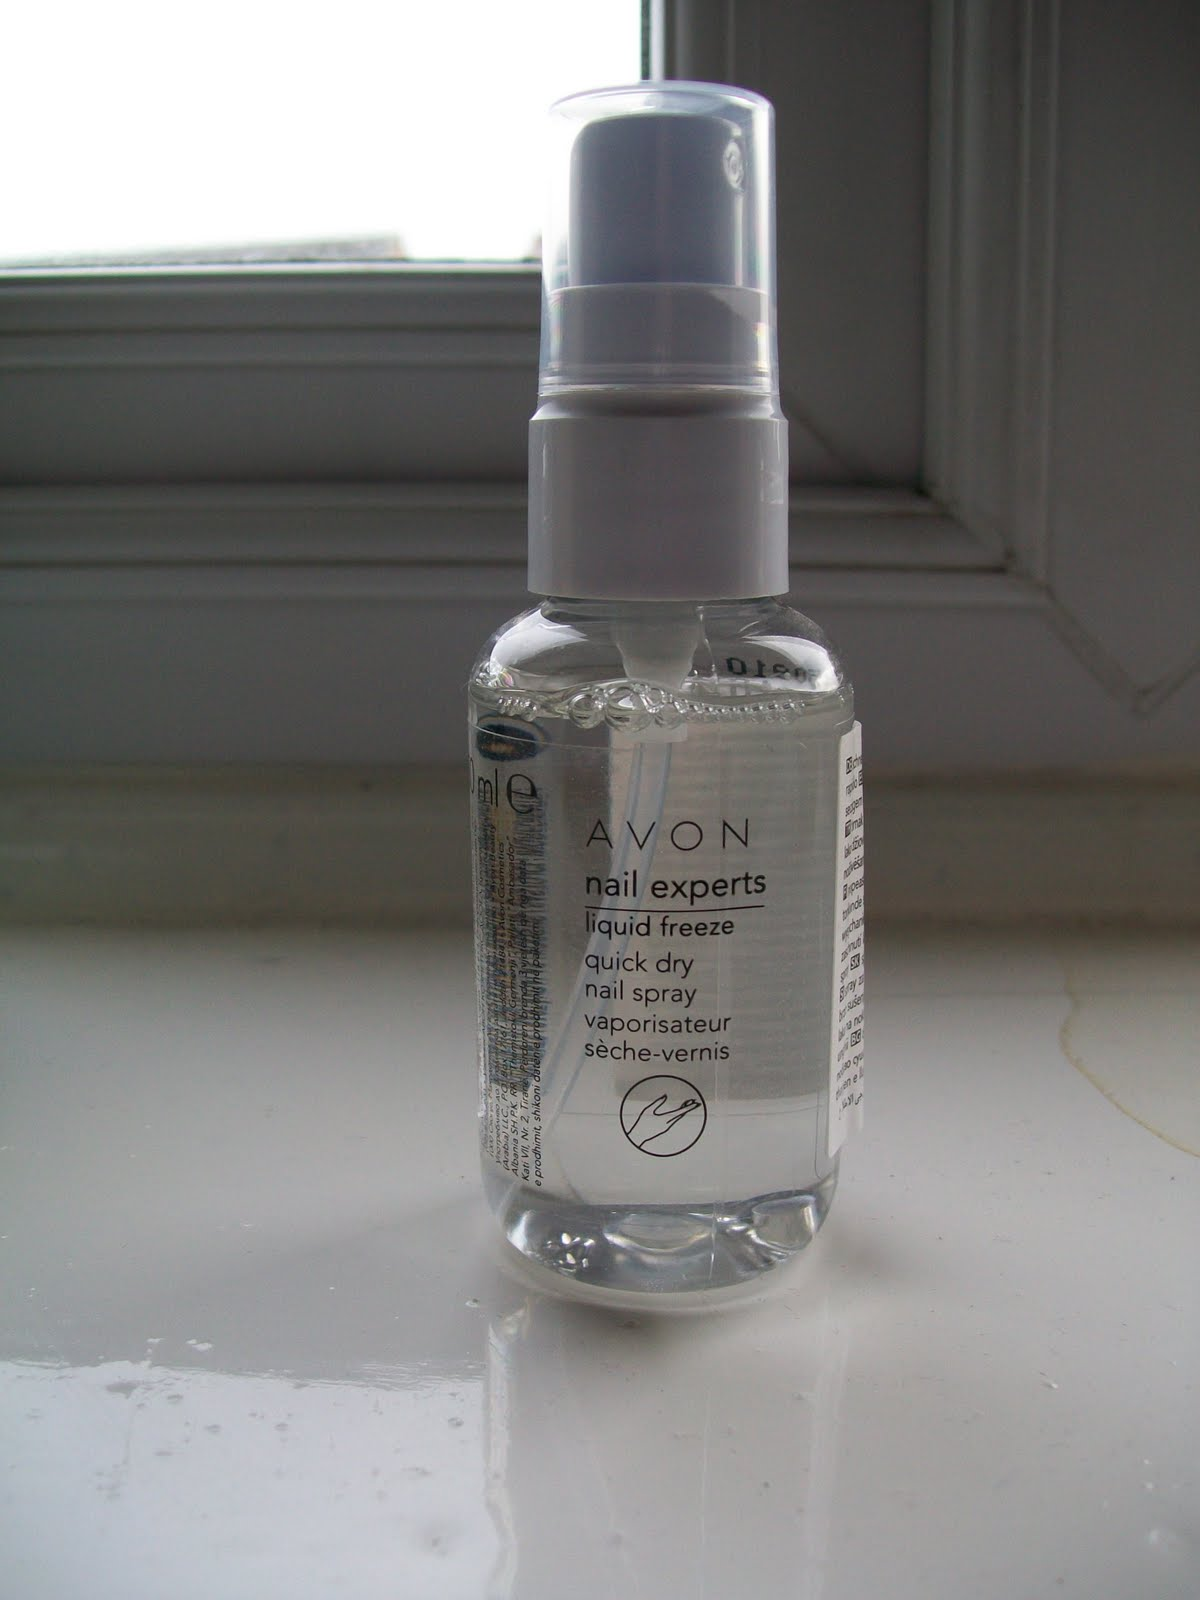 Beauty and Beyond....: Review - Avon liquid freeze quick dry nail spray